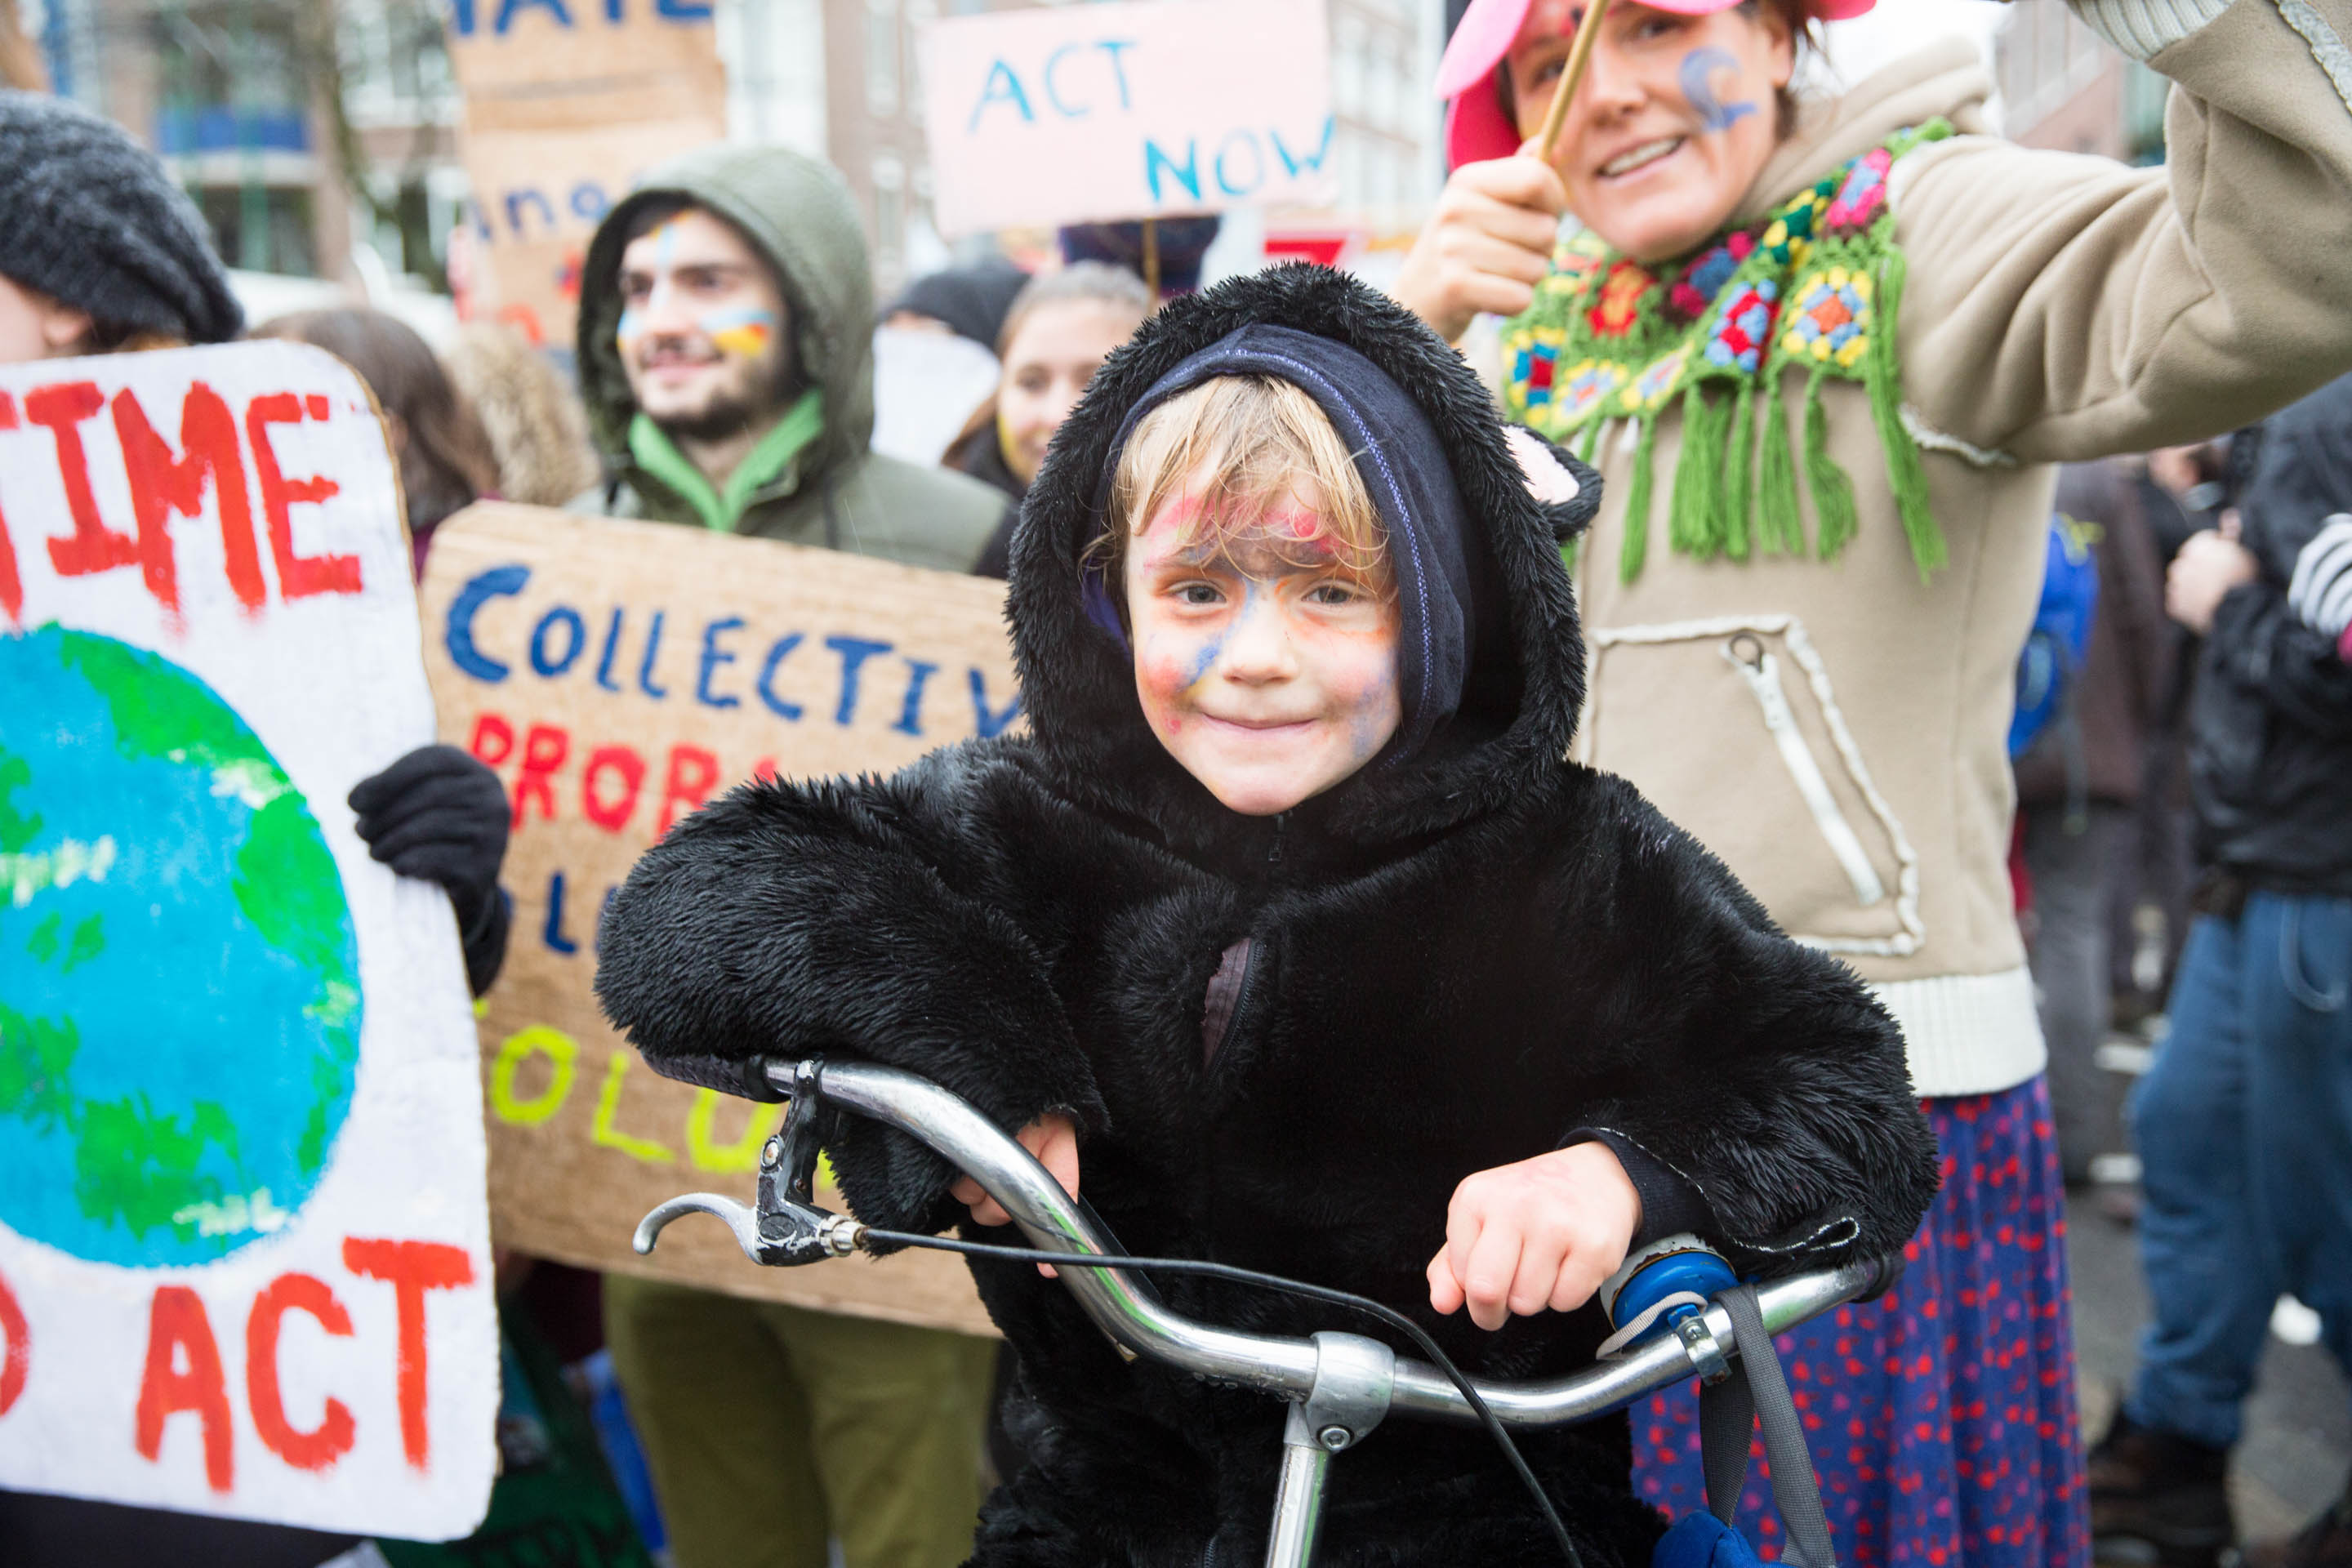 013-Klimaatparade-Peoples-Climate-March-Graphic-Alert-Act-Impact-03